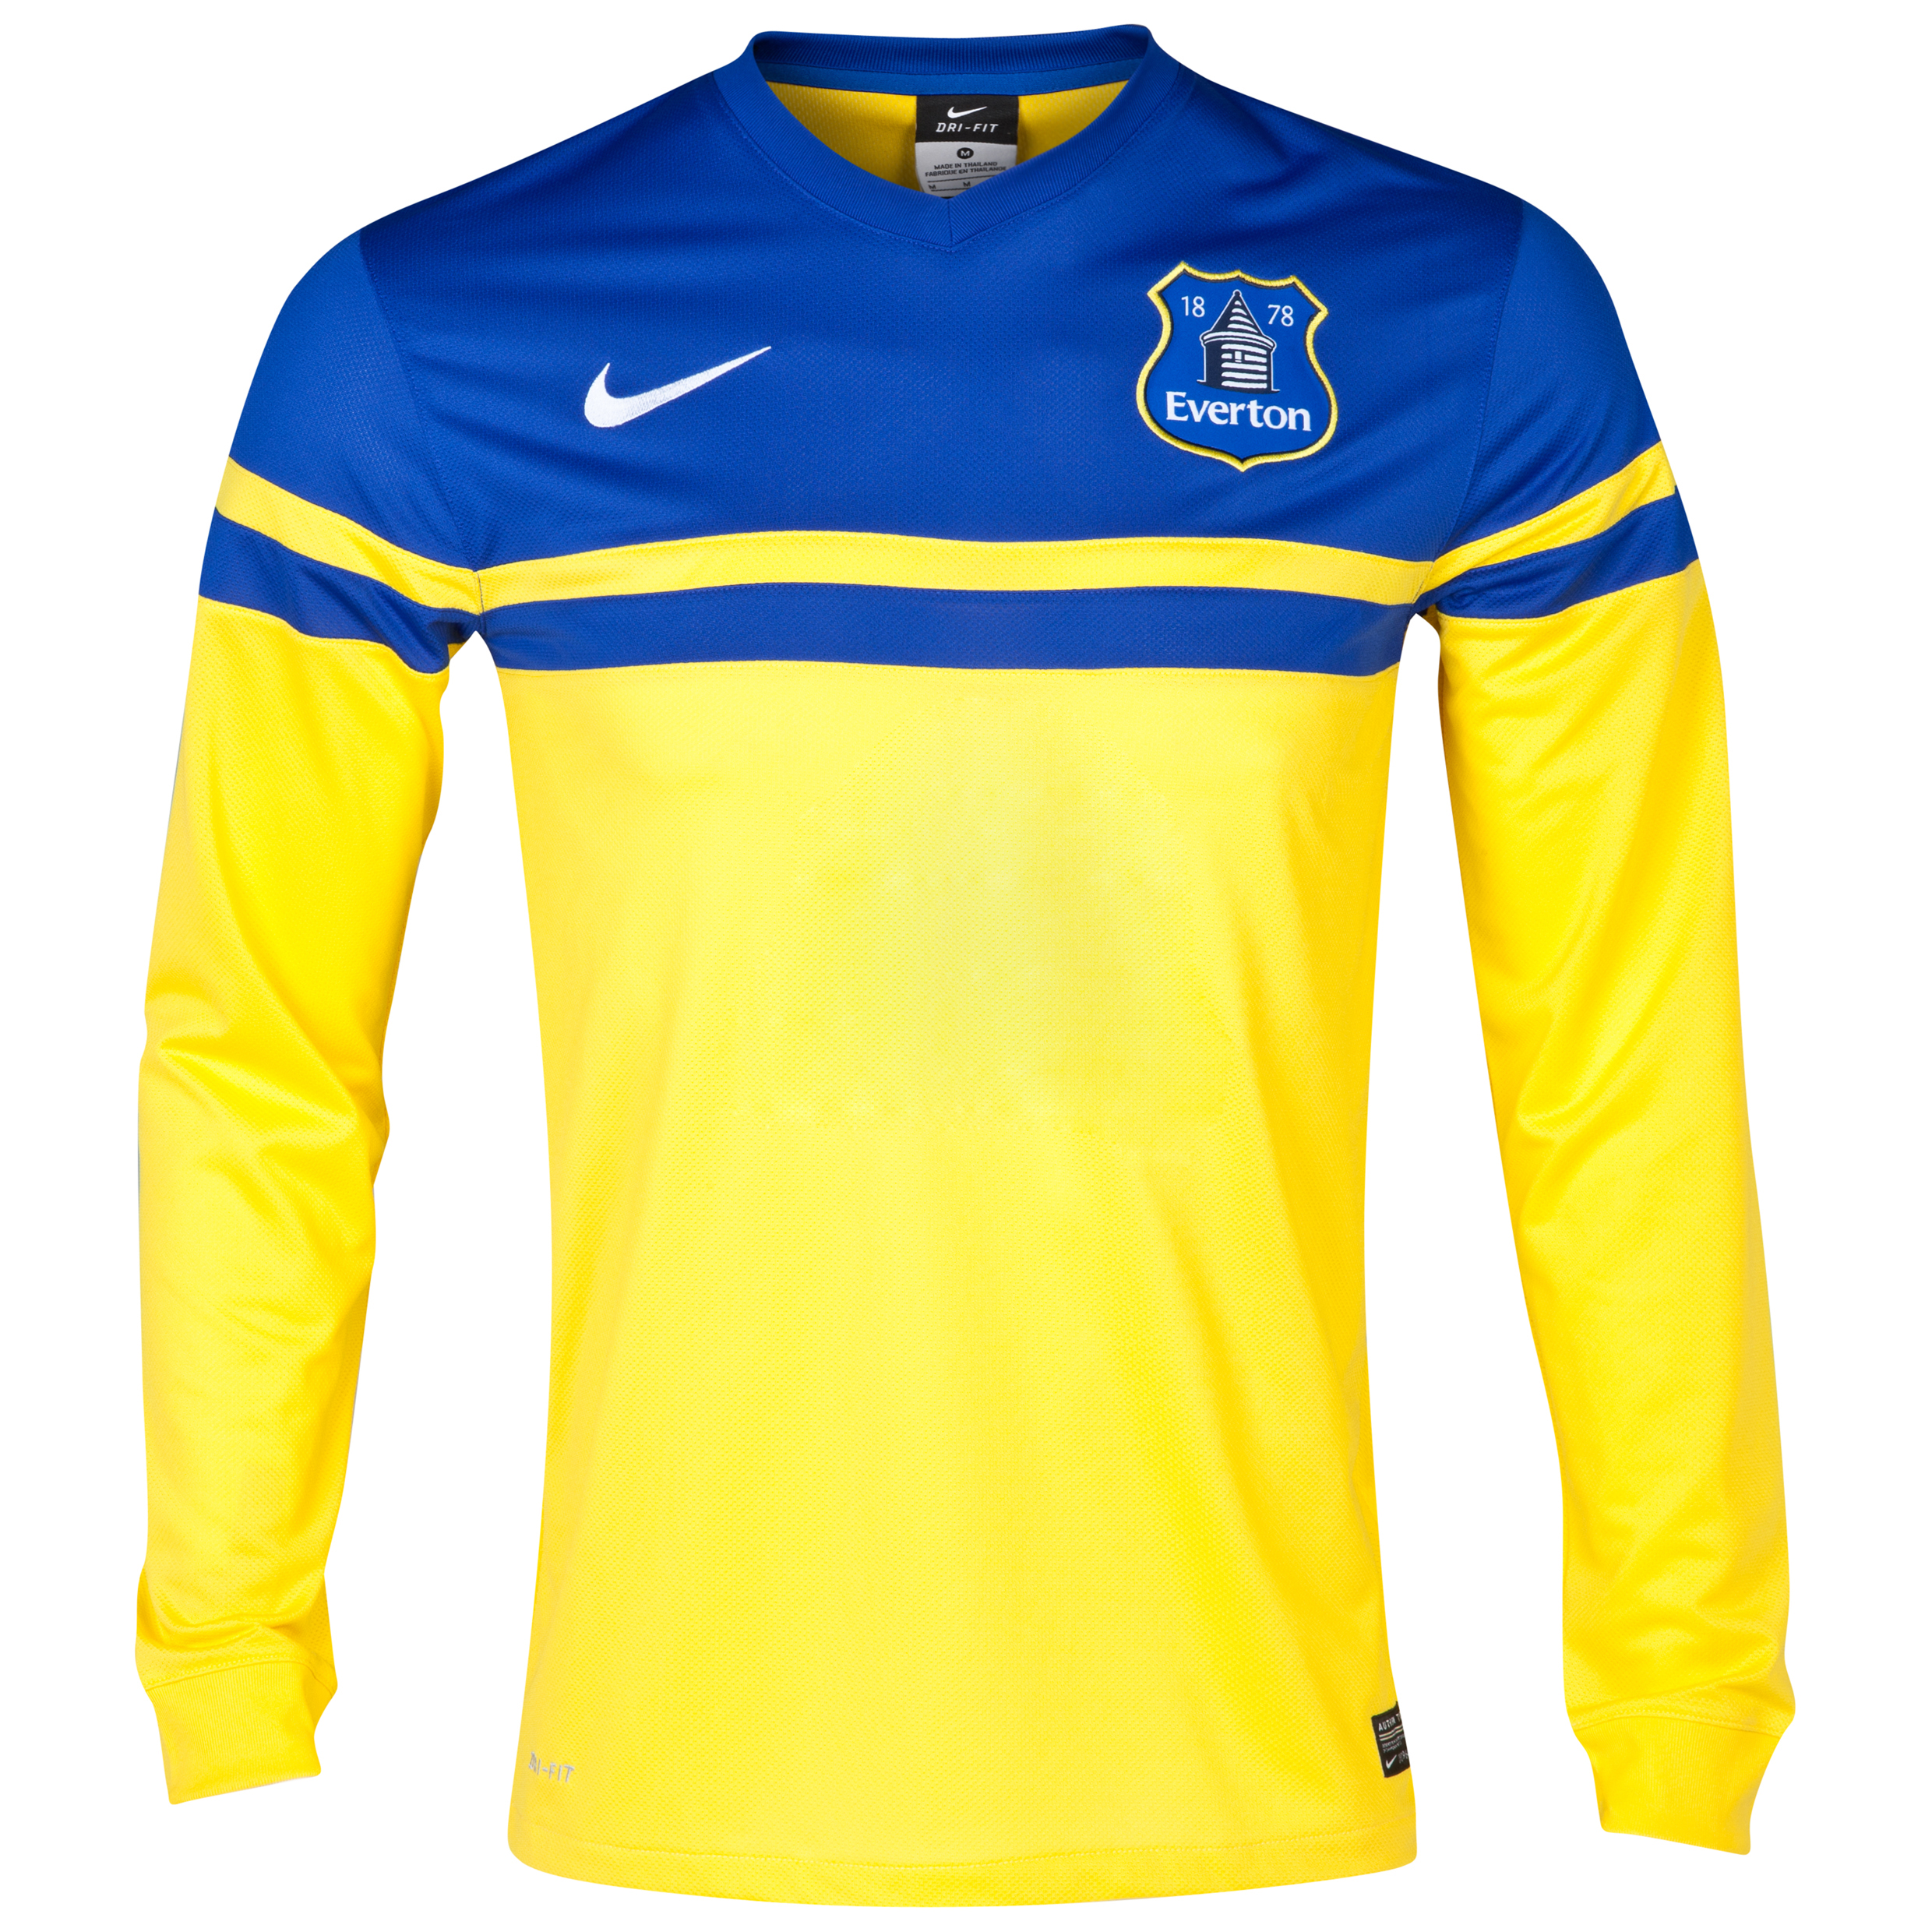 Everton Away Shirt 2013/14 - Junior - Long Sleeved Yellow